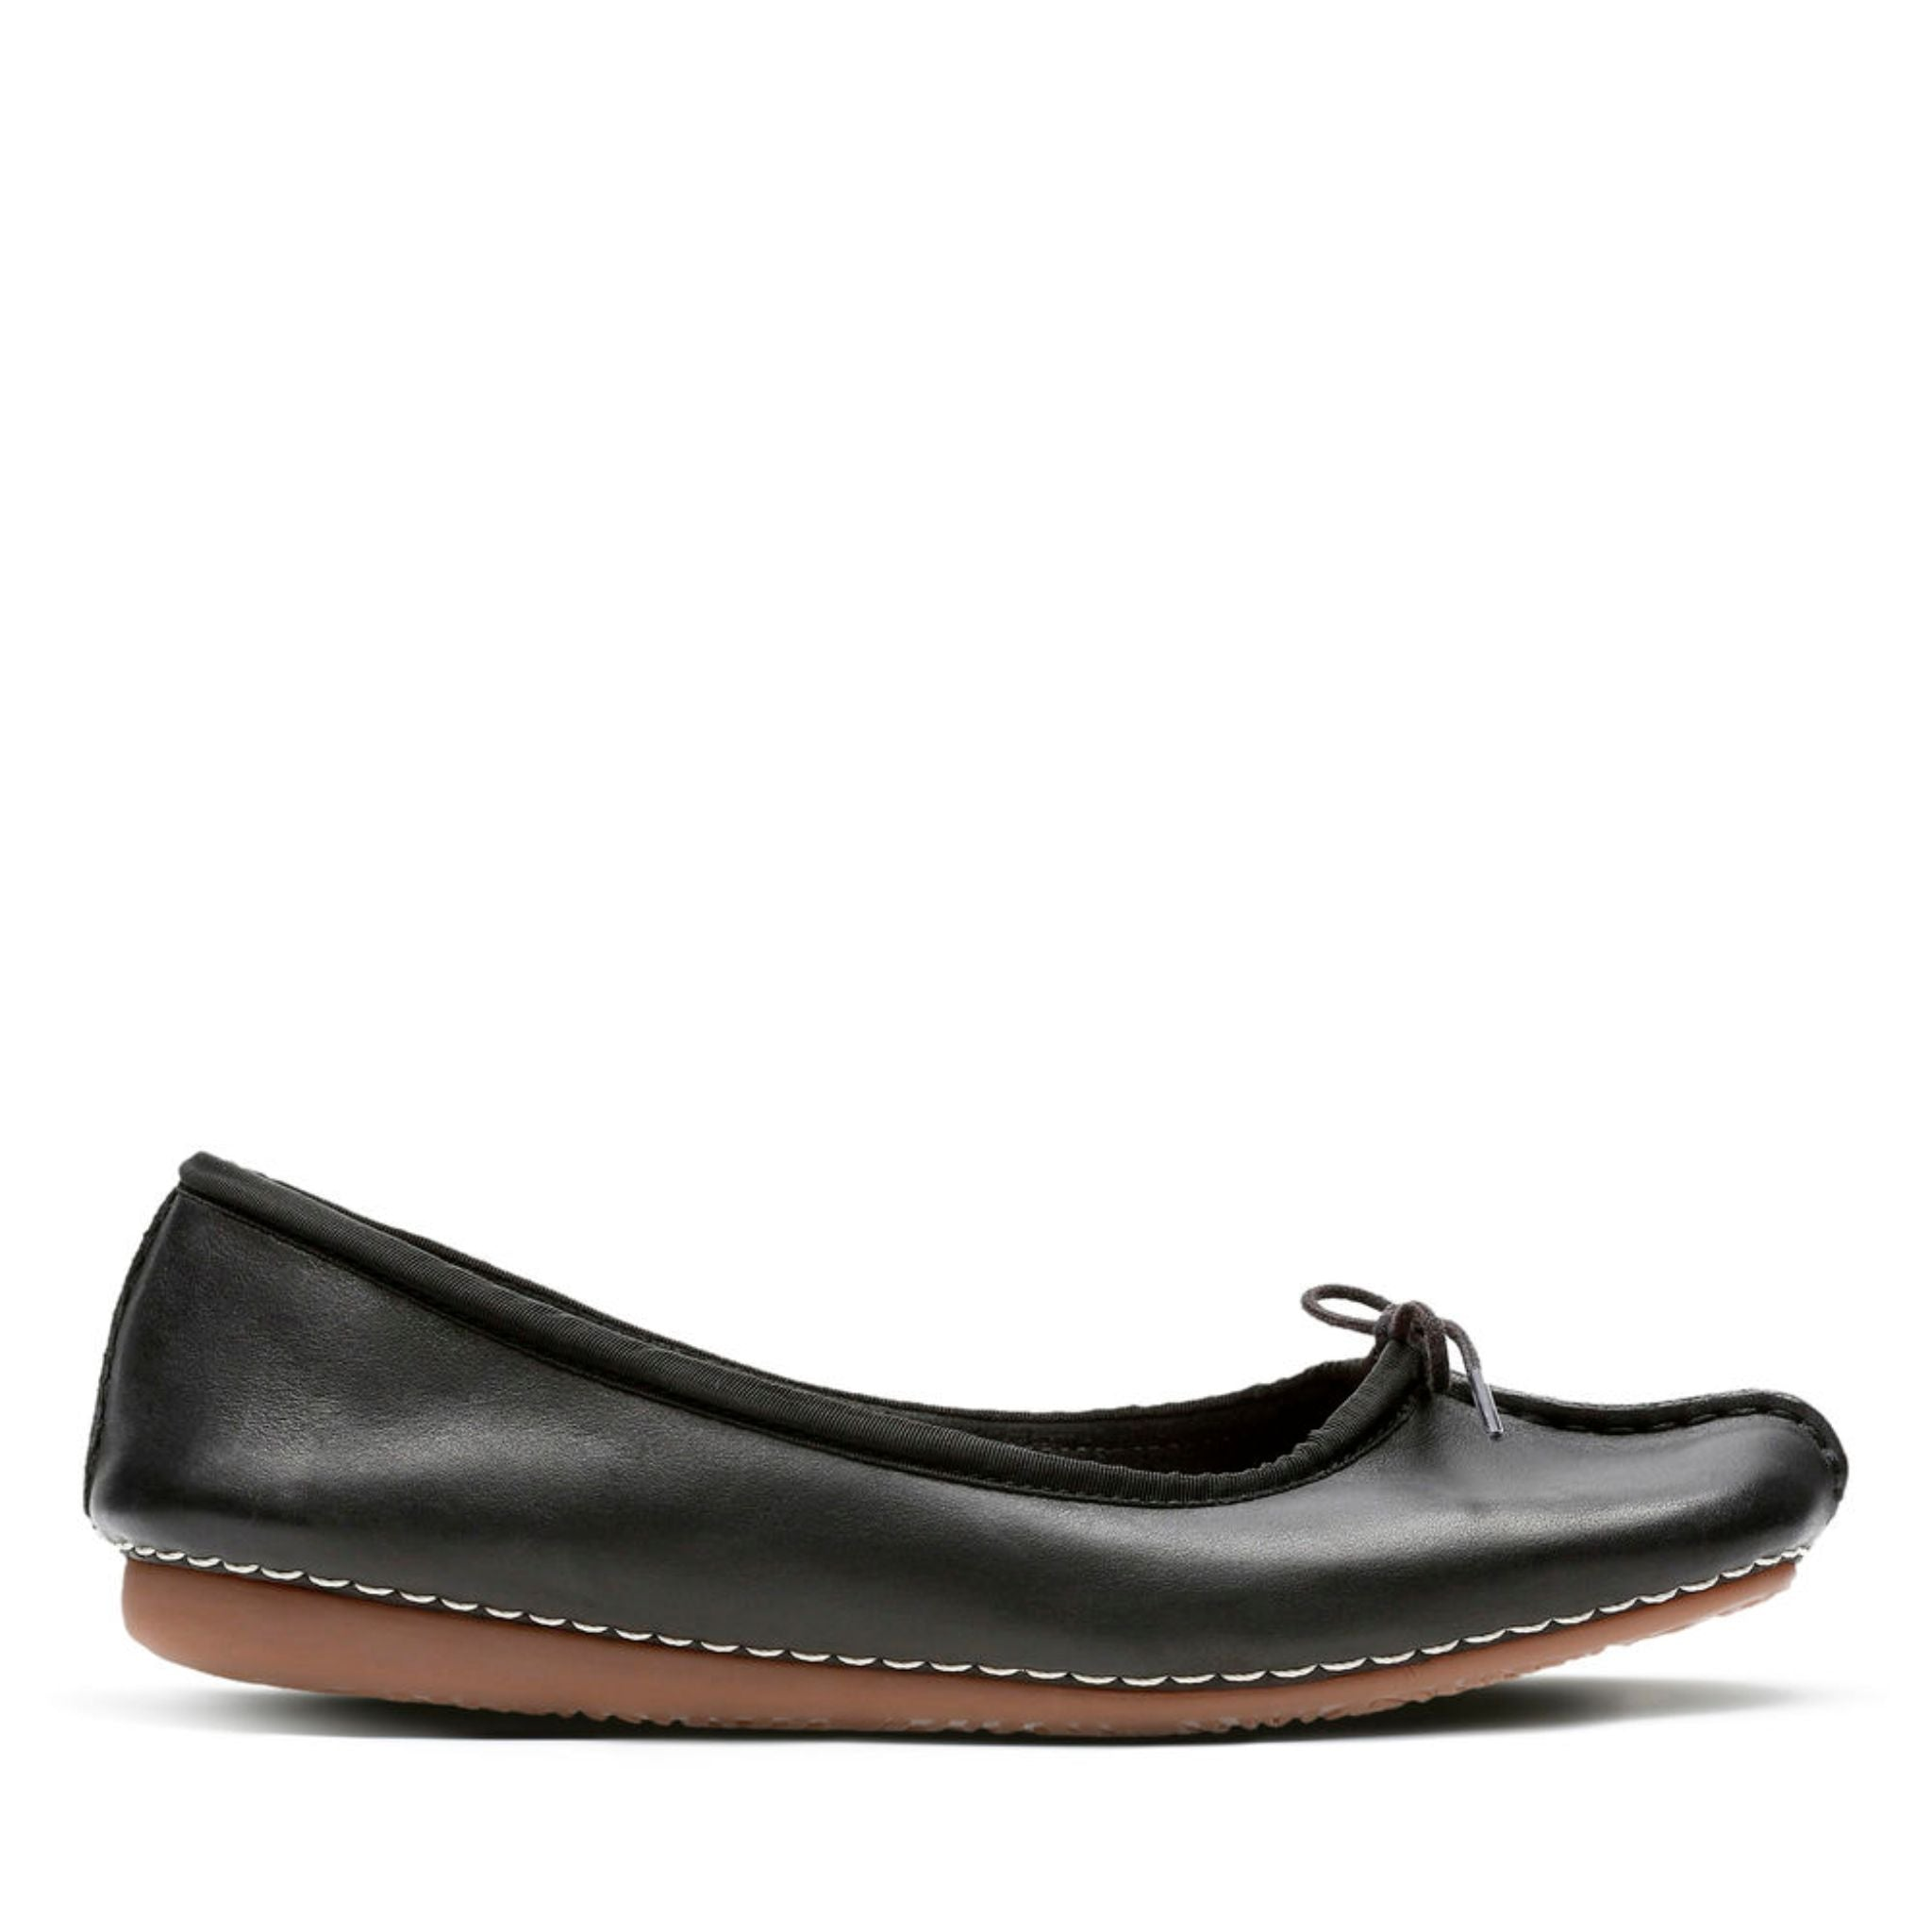 Clarks Unstructured Freckle Ice Black Leather